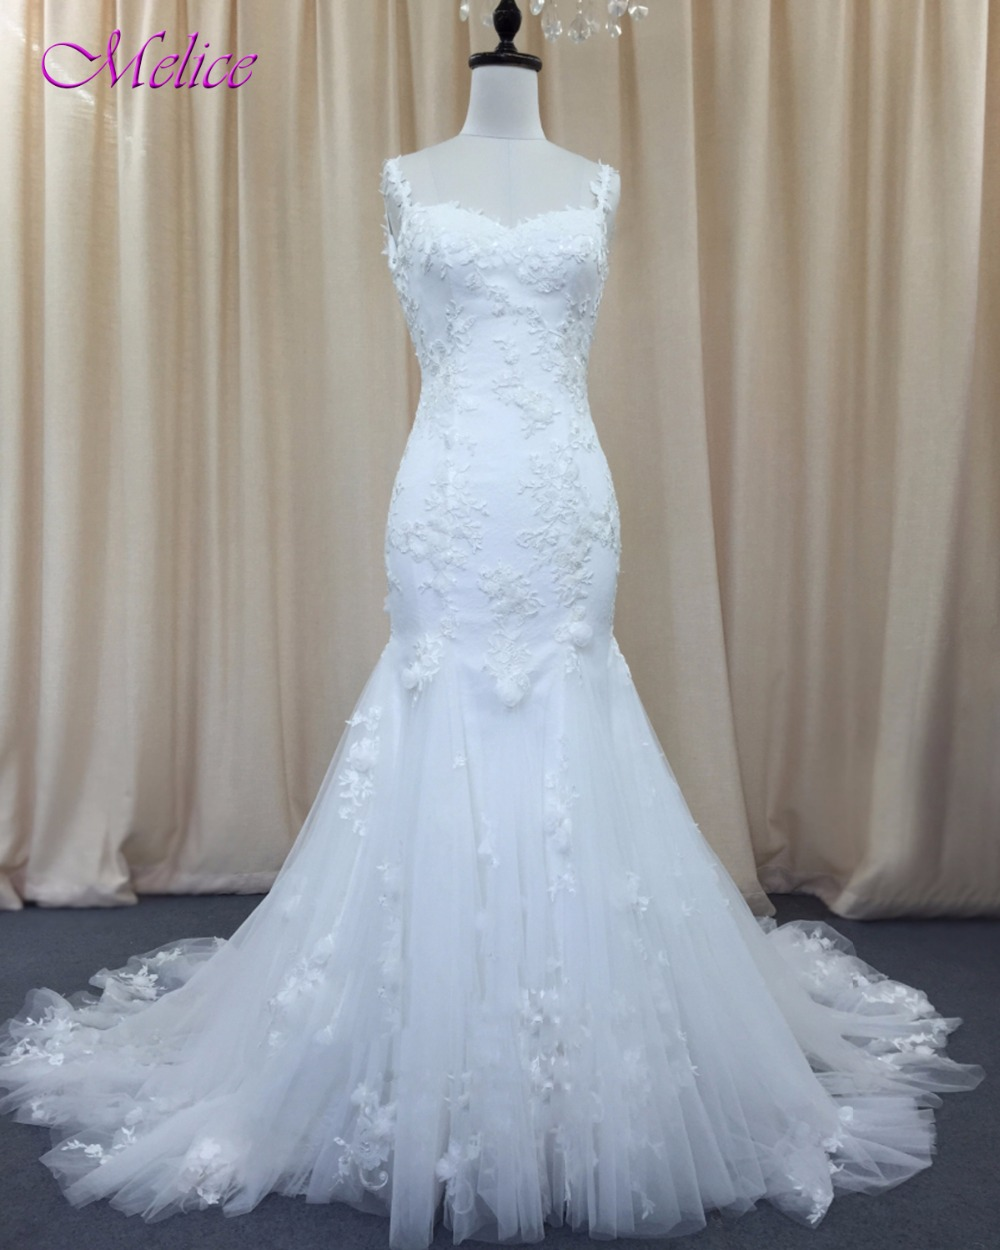 Sweetheart Neckline Lace Mermaid Wedding Dresses New 2019: Melice Sexy Sweetheart Neck Appliques Lace Mermaid Wedding